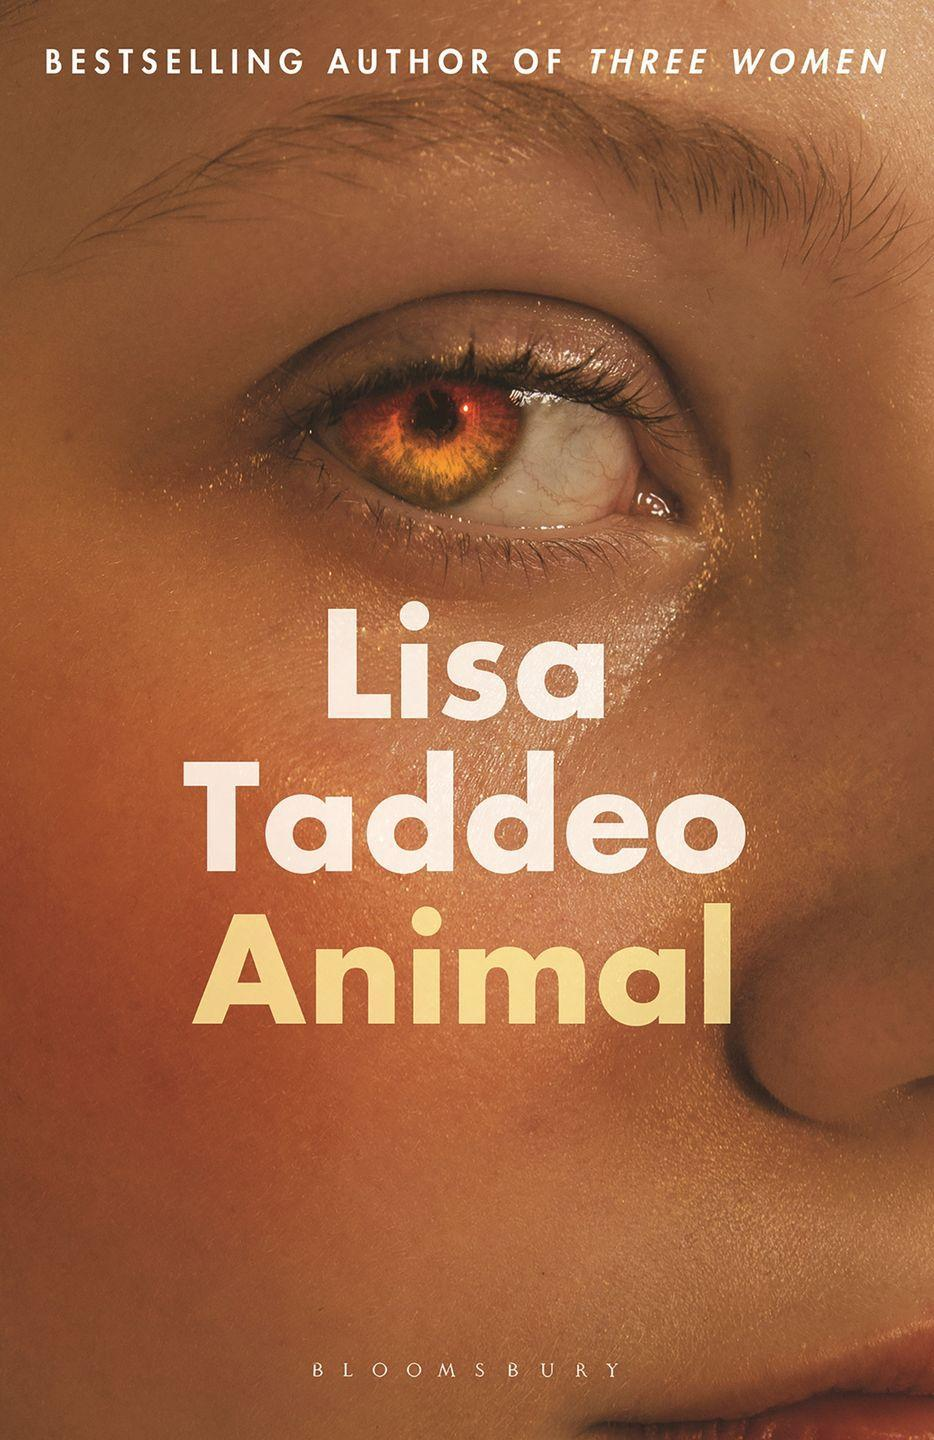 """<p><a class=""""link rapid-noclick-resp"""" href=""""https://www.amazon.co.uk/Animal-first-novel-author-Three/dp/152663094X/ref=sr_1_1?crid=D82UX1PHFGPR&dchild=1&keywords=animal+lisa+taddeo&qid=1609950056&s=books&sprefix=animal+lisa%2Cstripbooks%2C142&sr=1-1&tag=hearstuk-yahoo-21&ascsubtag=%5Bartid%7C1923.g.35138437%5Bsrc%7Cyahoo-uk"""" rel=""""nofollow noopener"""" target=""""_blank"""" data-ylk=""""slk:SHOP"""">SHOP</a></p><p>Lisa Taddeo's Three Women was one of the most-discussed books of 2019, ushering readers inside the darkest places of the subject's minds, which Taddeo excavated through eight years of conversations. In Animal, she sticks with the themes of sexuality and darkness while moving info fiction, opening with the image of a man, who loves the female protagonist, shooting himself in the head in a restaurant.</p><p>OO</p>"""